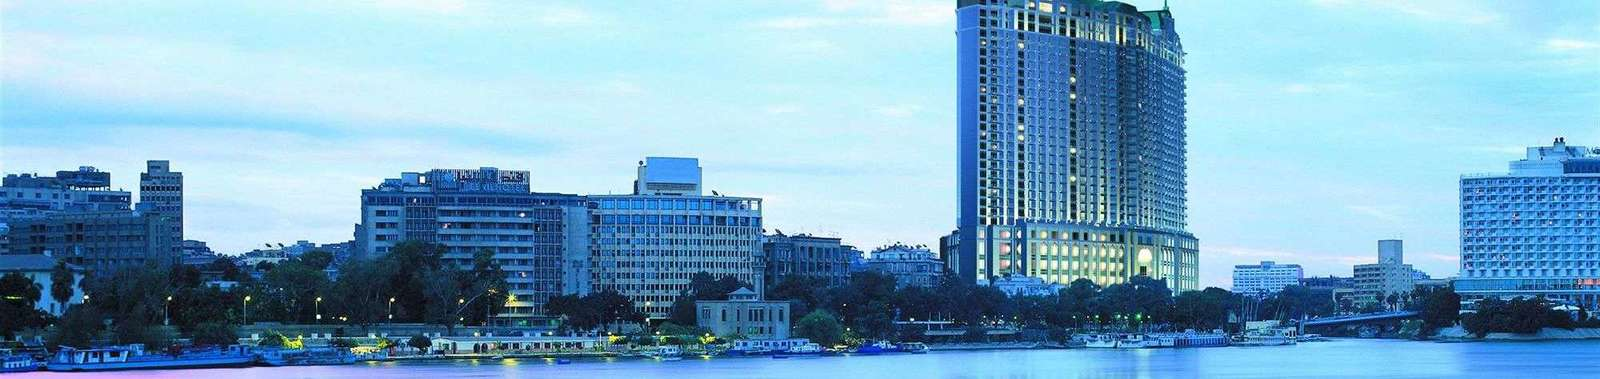 four-seasons-hotel-cairo-nile-plaza-1